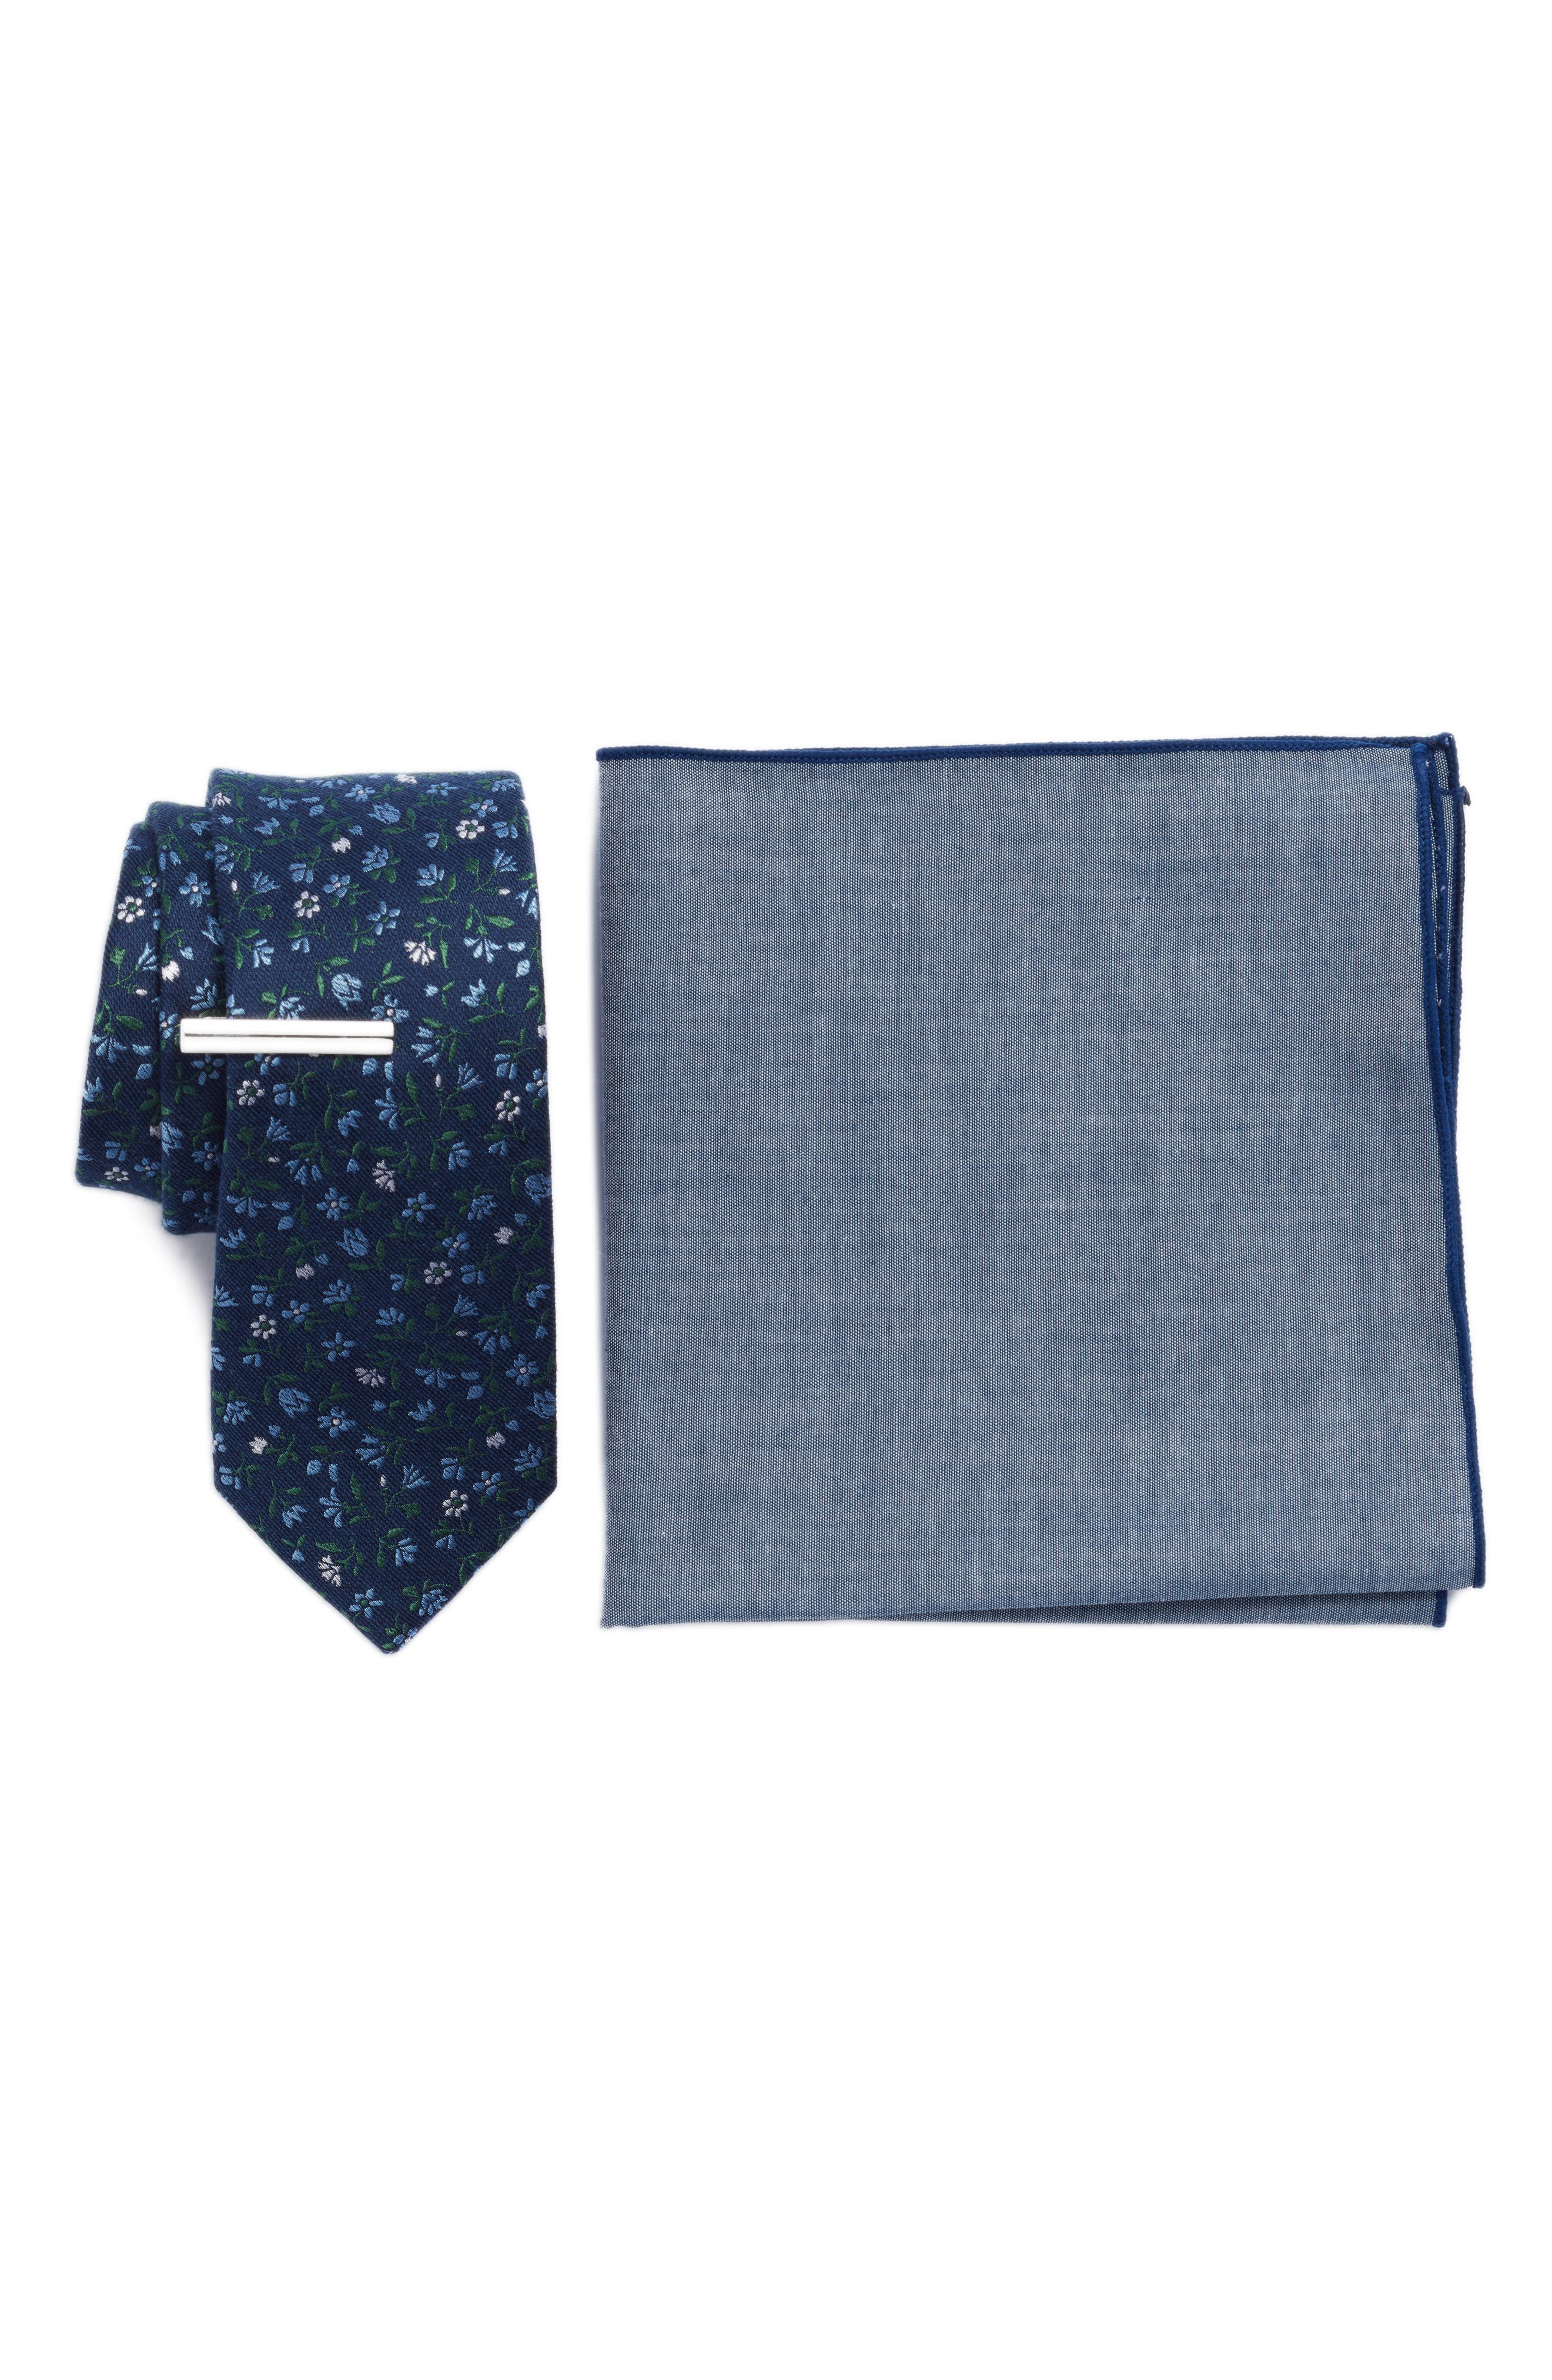 Floral Acres 3-Piece Skinny Tie Style Box,                         Main,                         color, NAVY